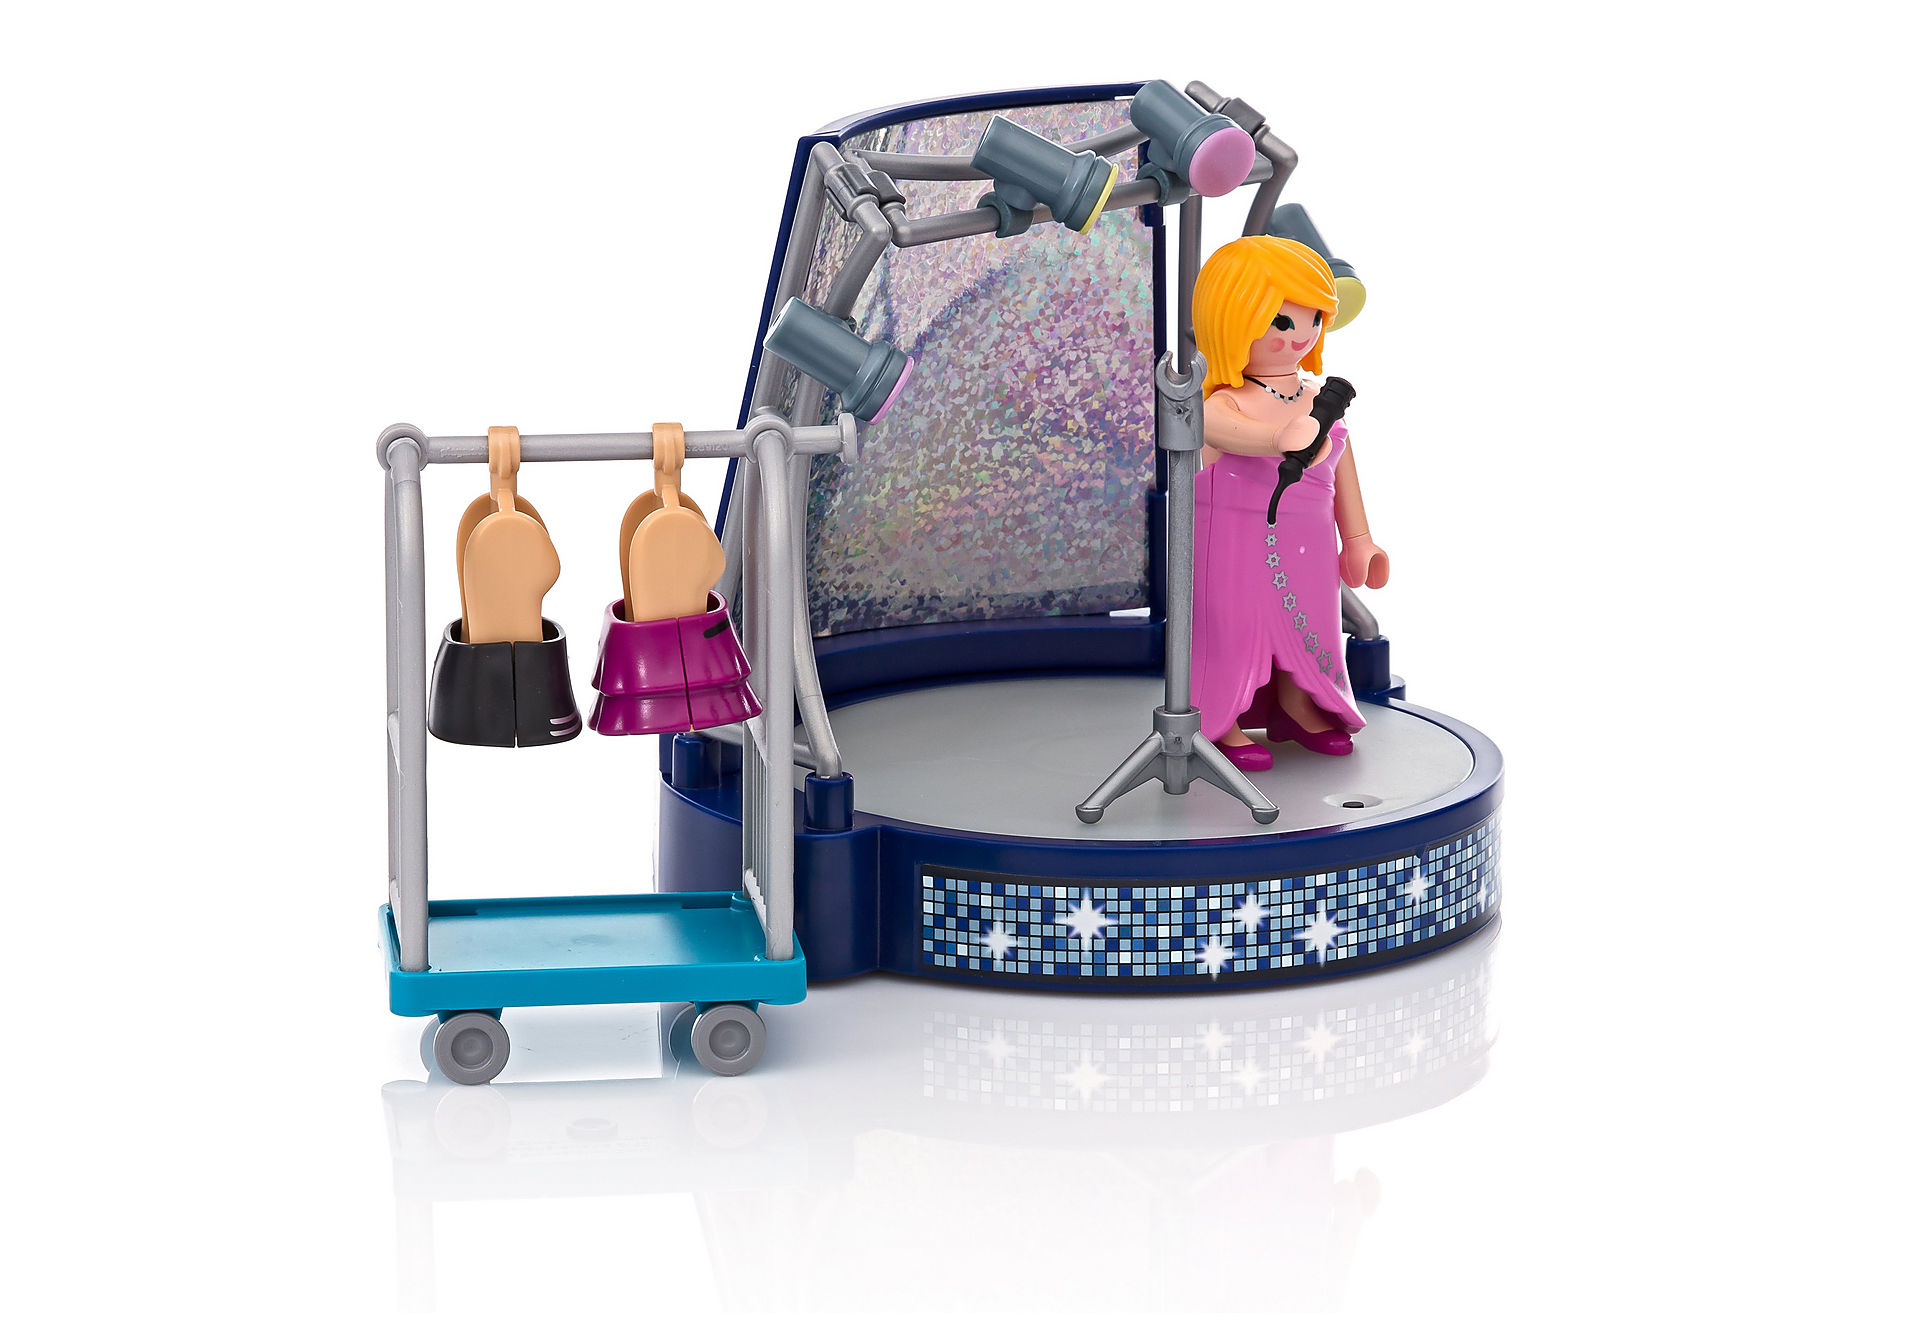 360degree image 36